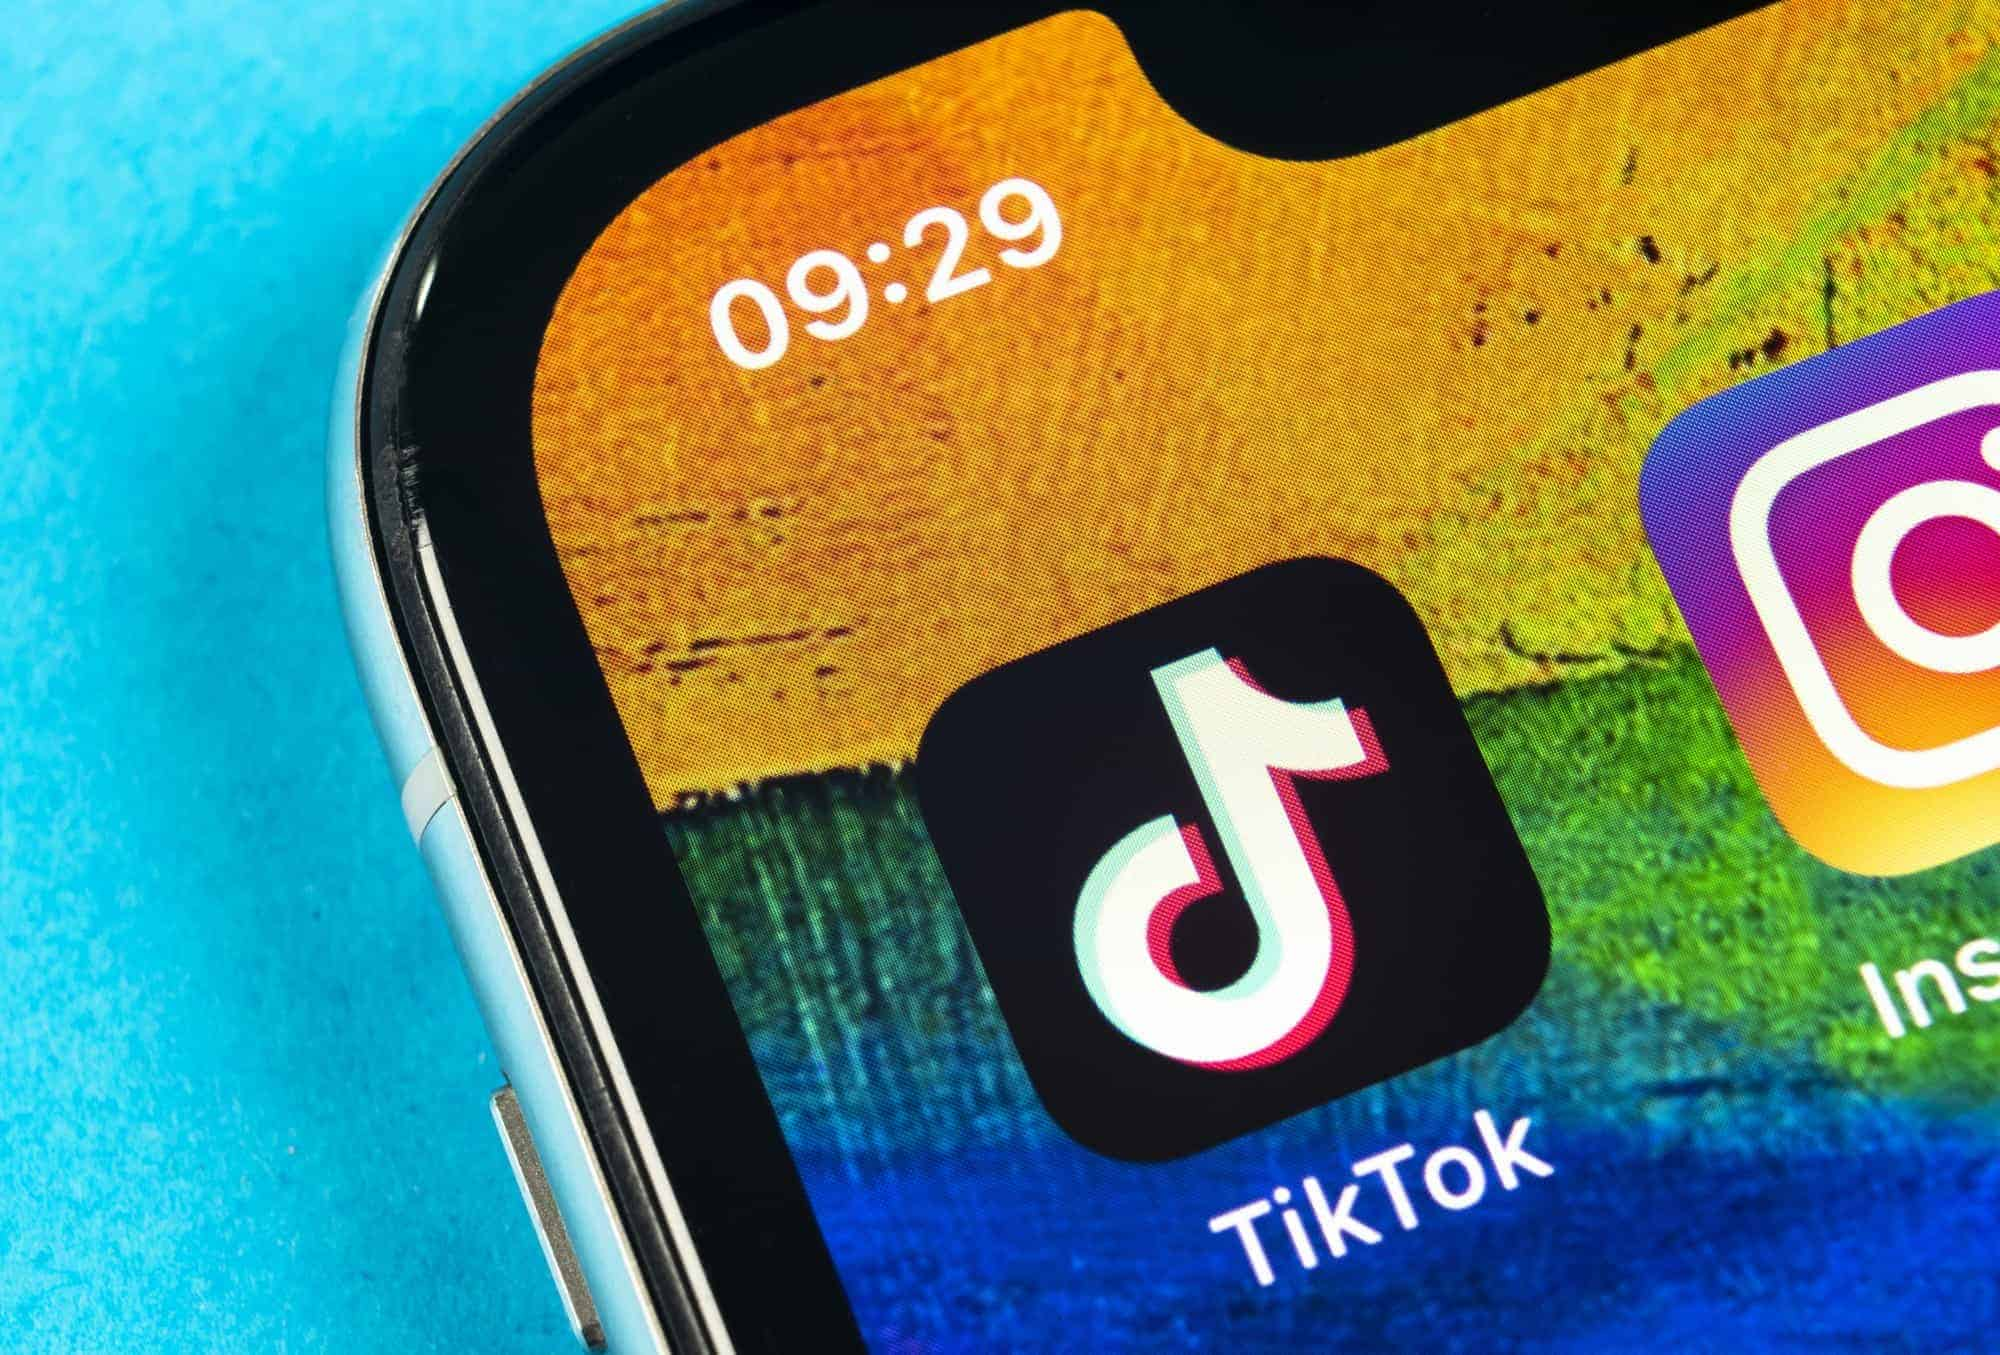 TikTok has released an update that would prevent the application from accessing the areas of...